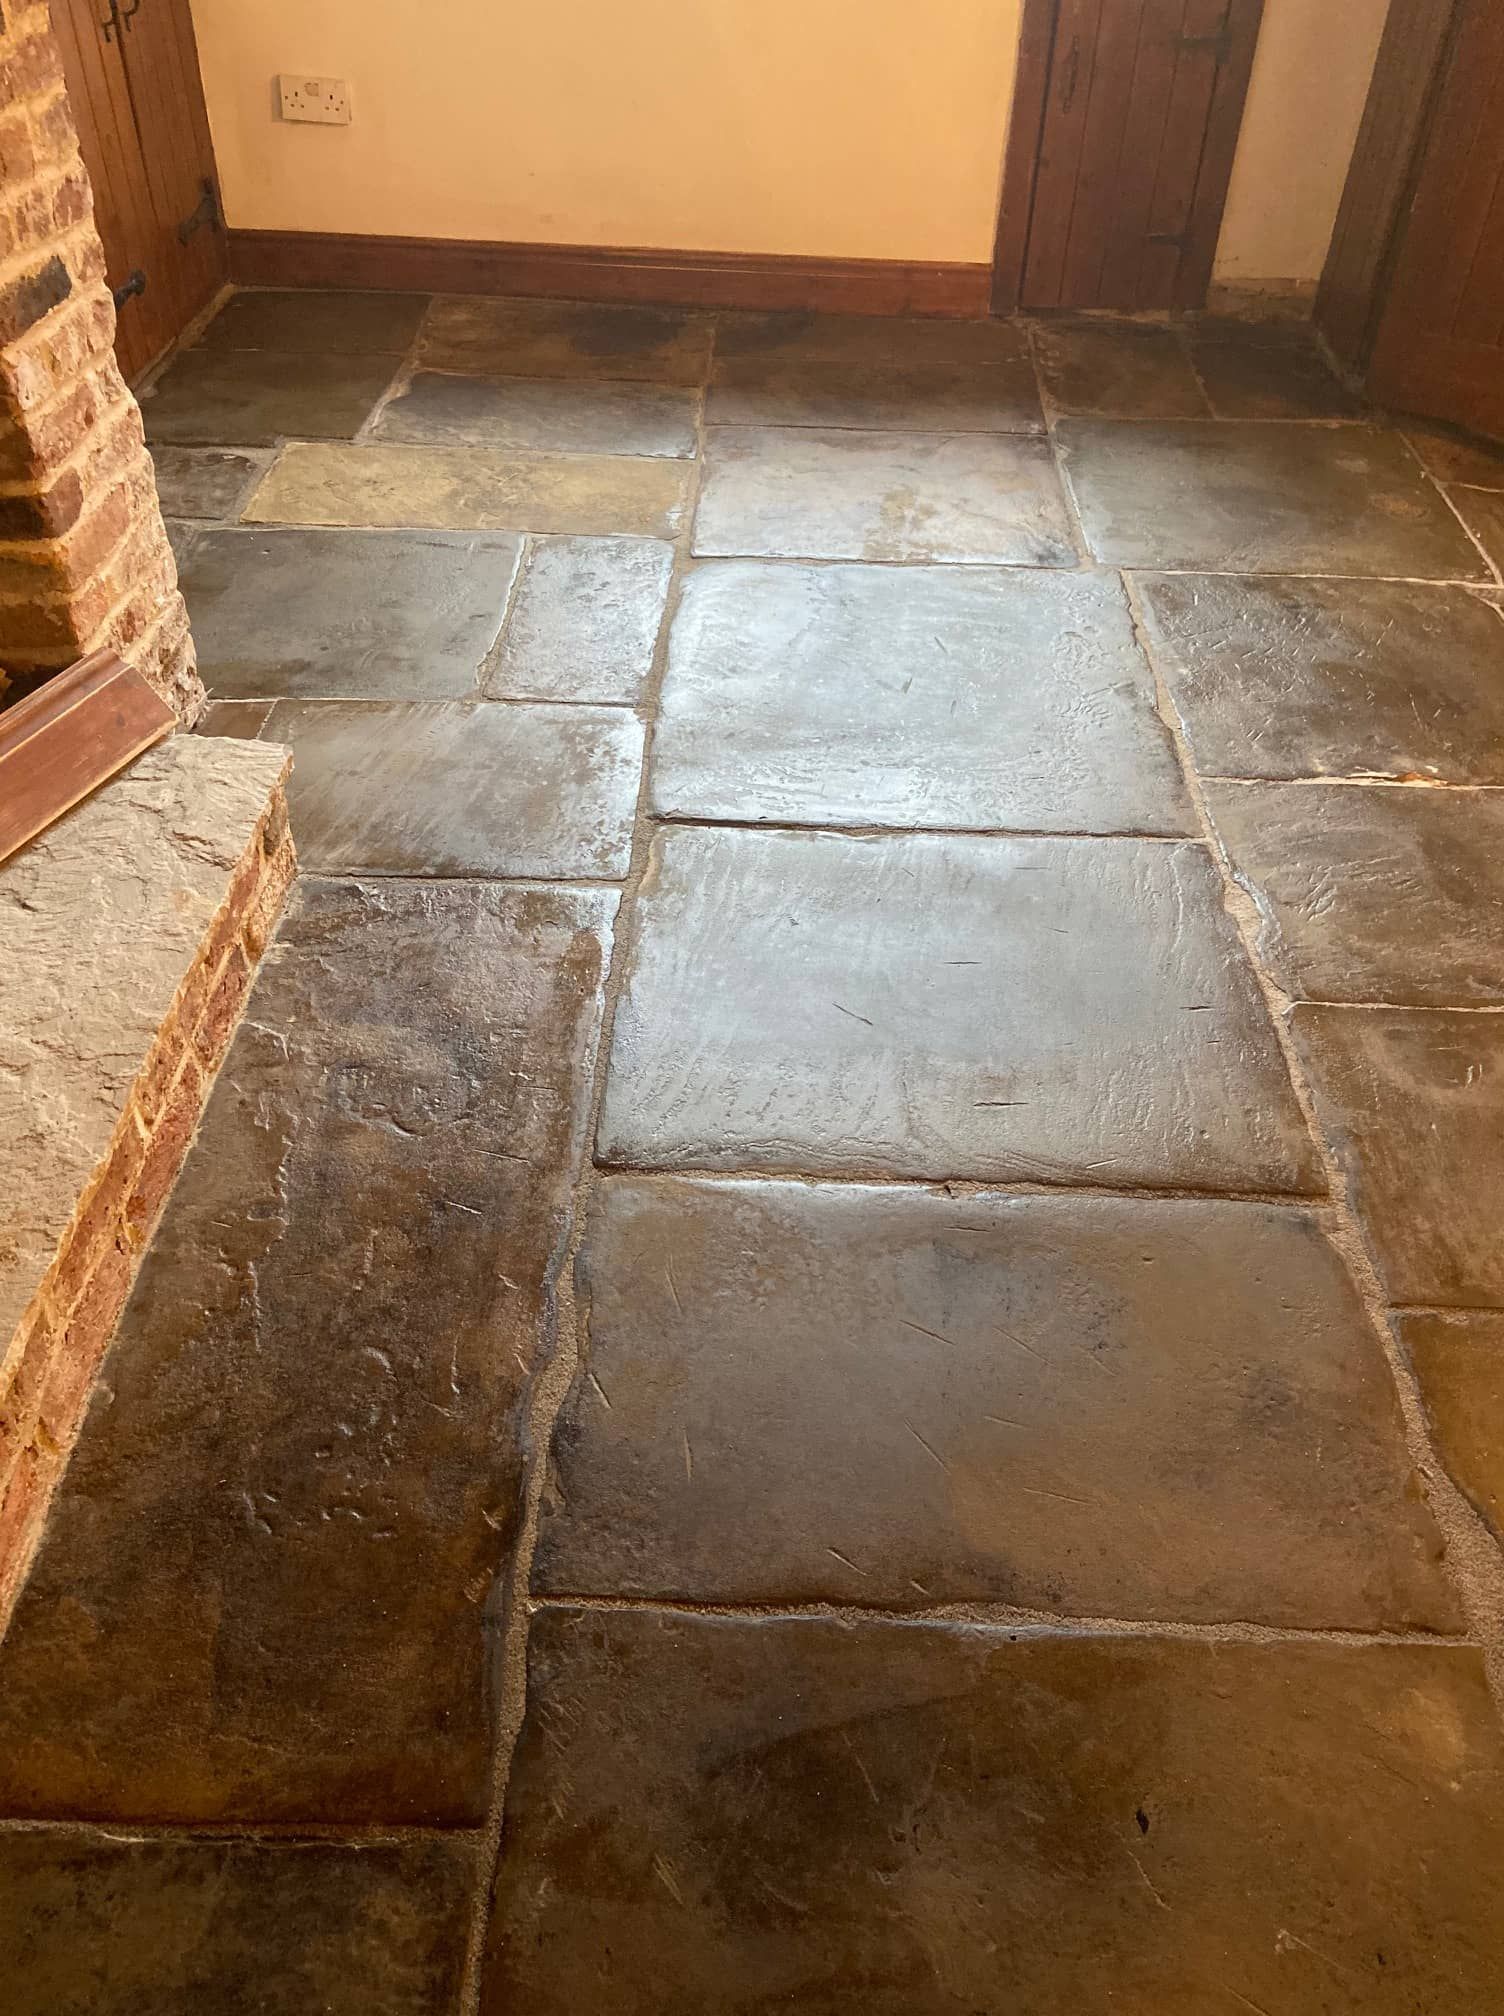 Flagstone-Floor After Restoration in Whalley